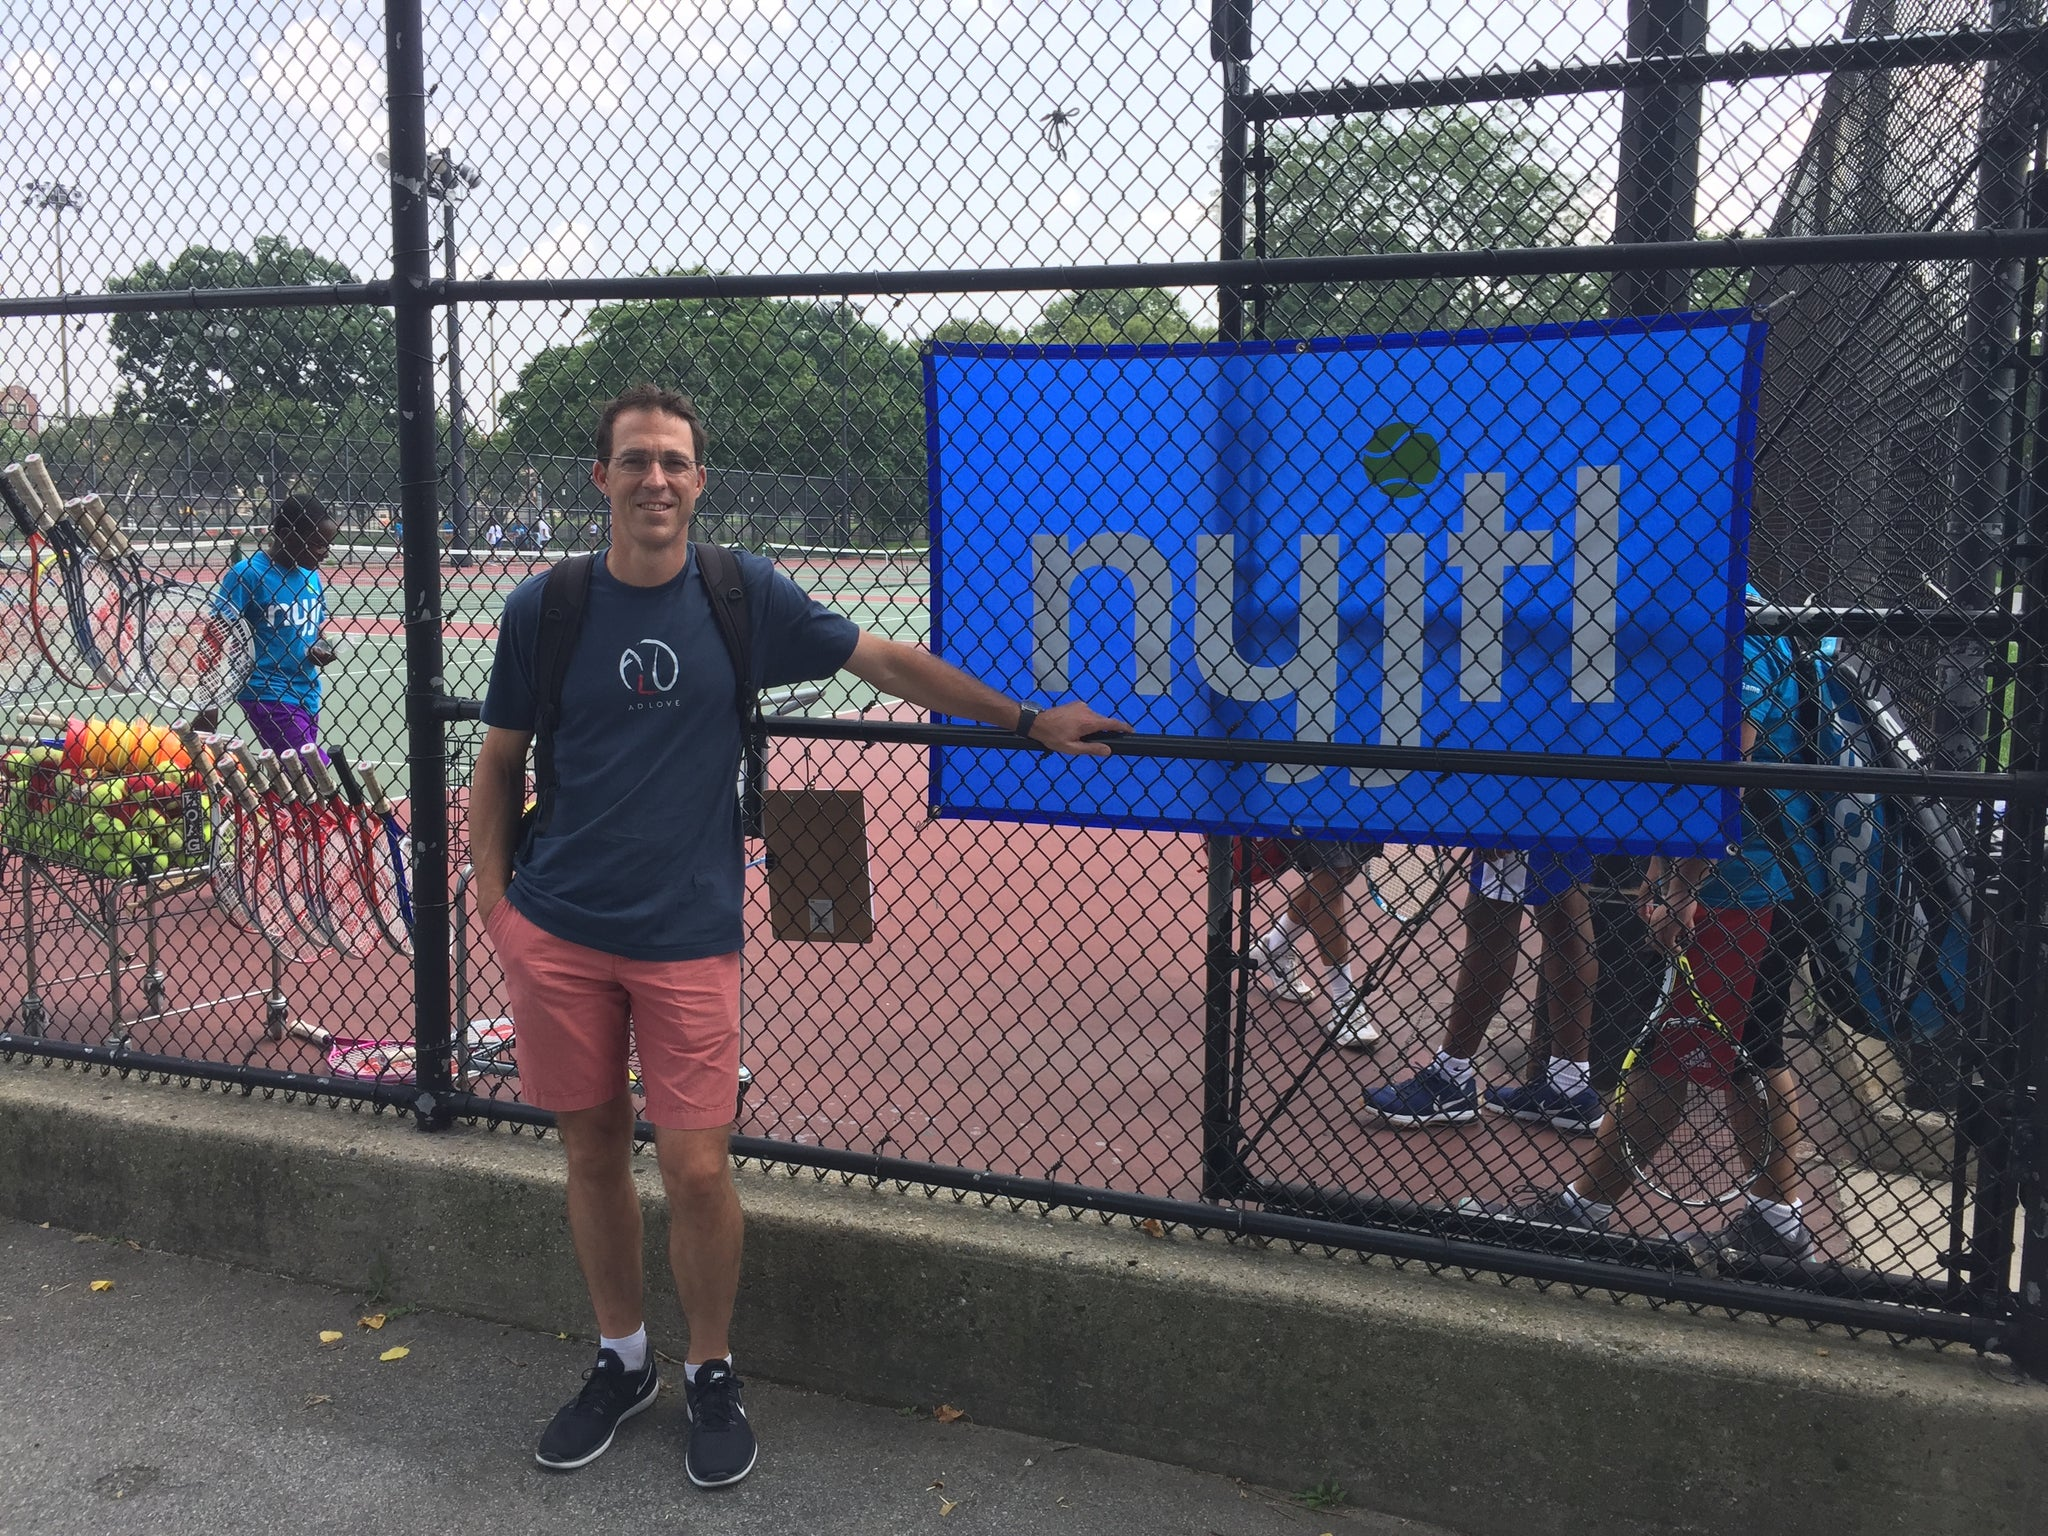 AD LOVE Partners with New York Junior Tennis & Learning!